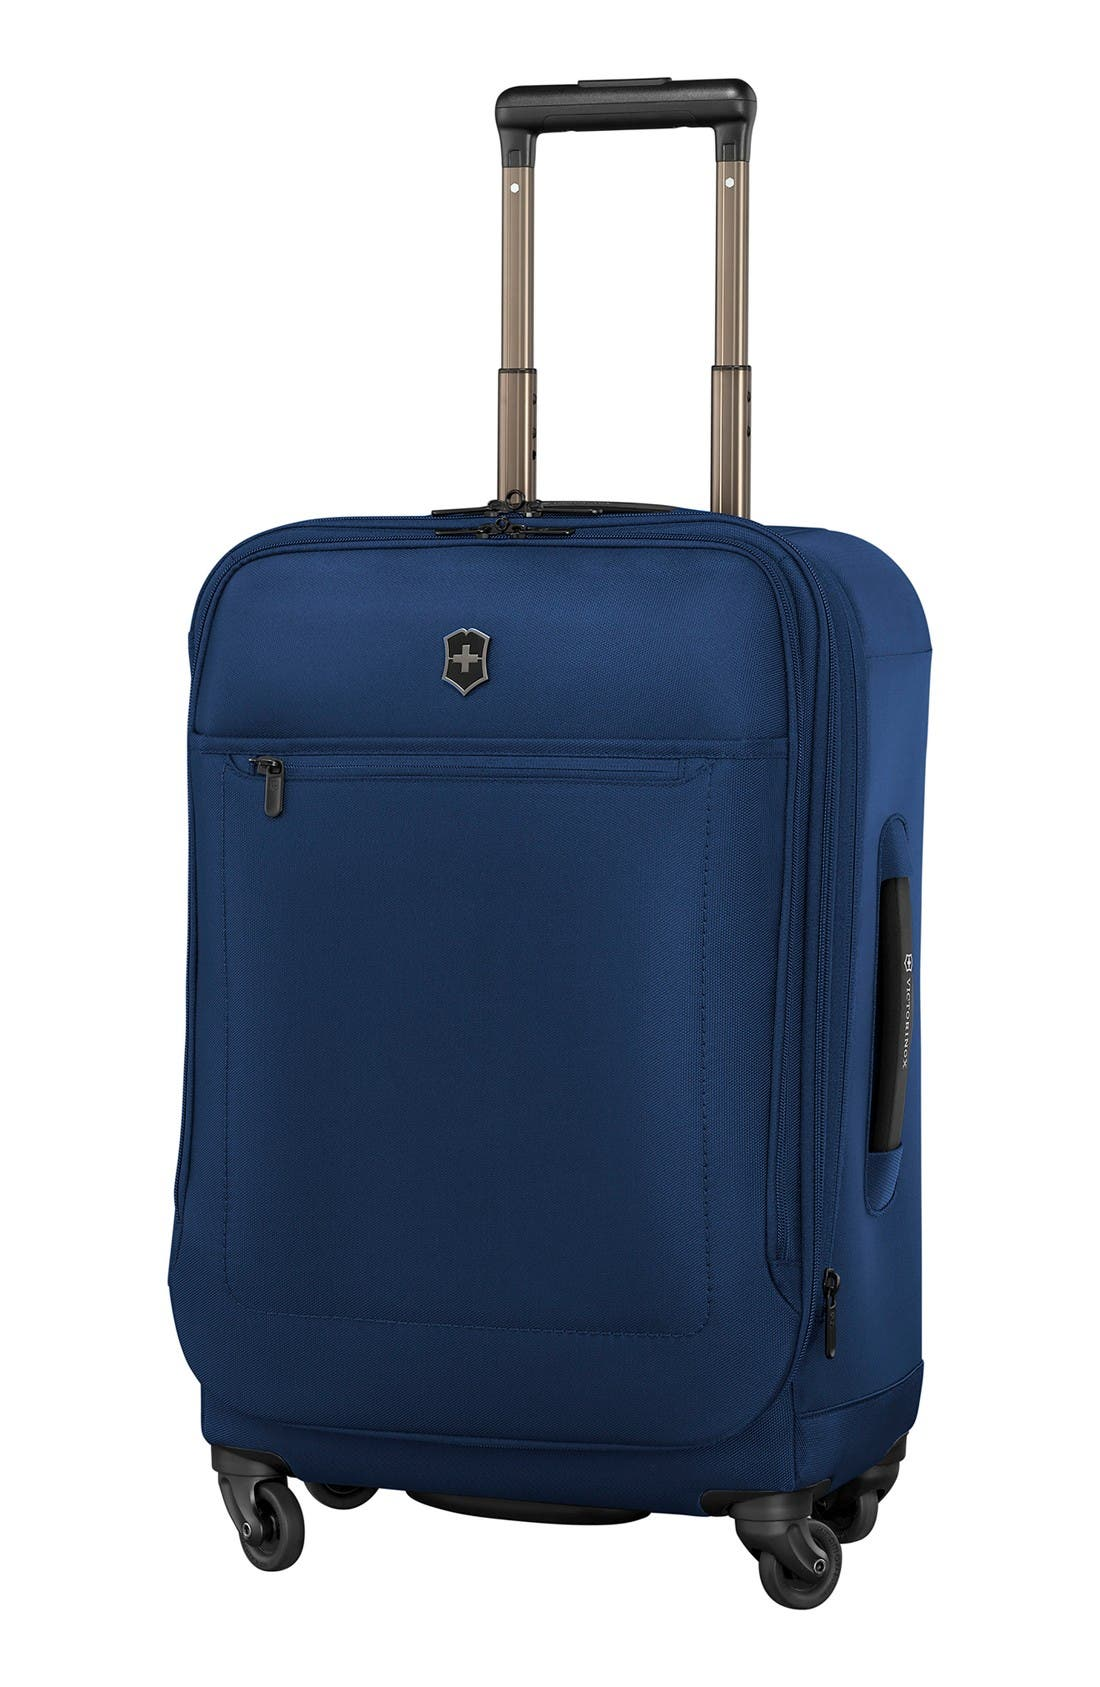 VICTORINOX SWISS ARMY<SUP>®</SUP> Avolve 3.0 24 Inch Large Carry-On